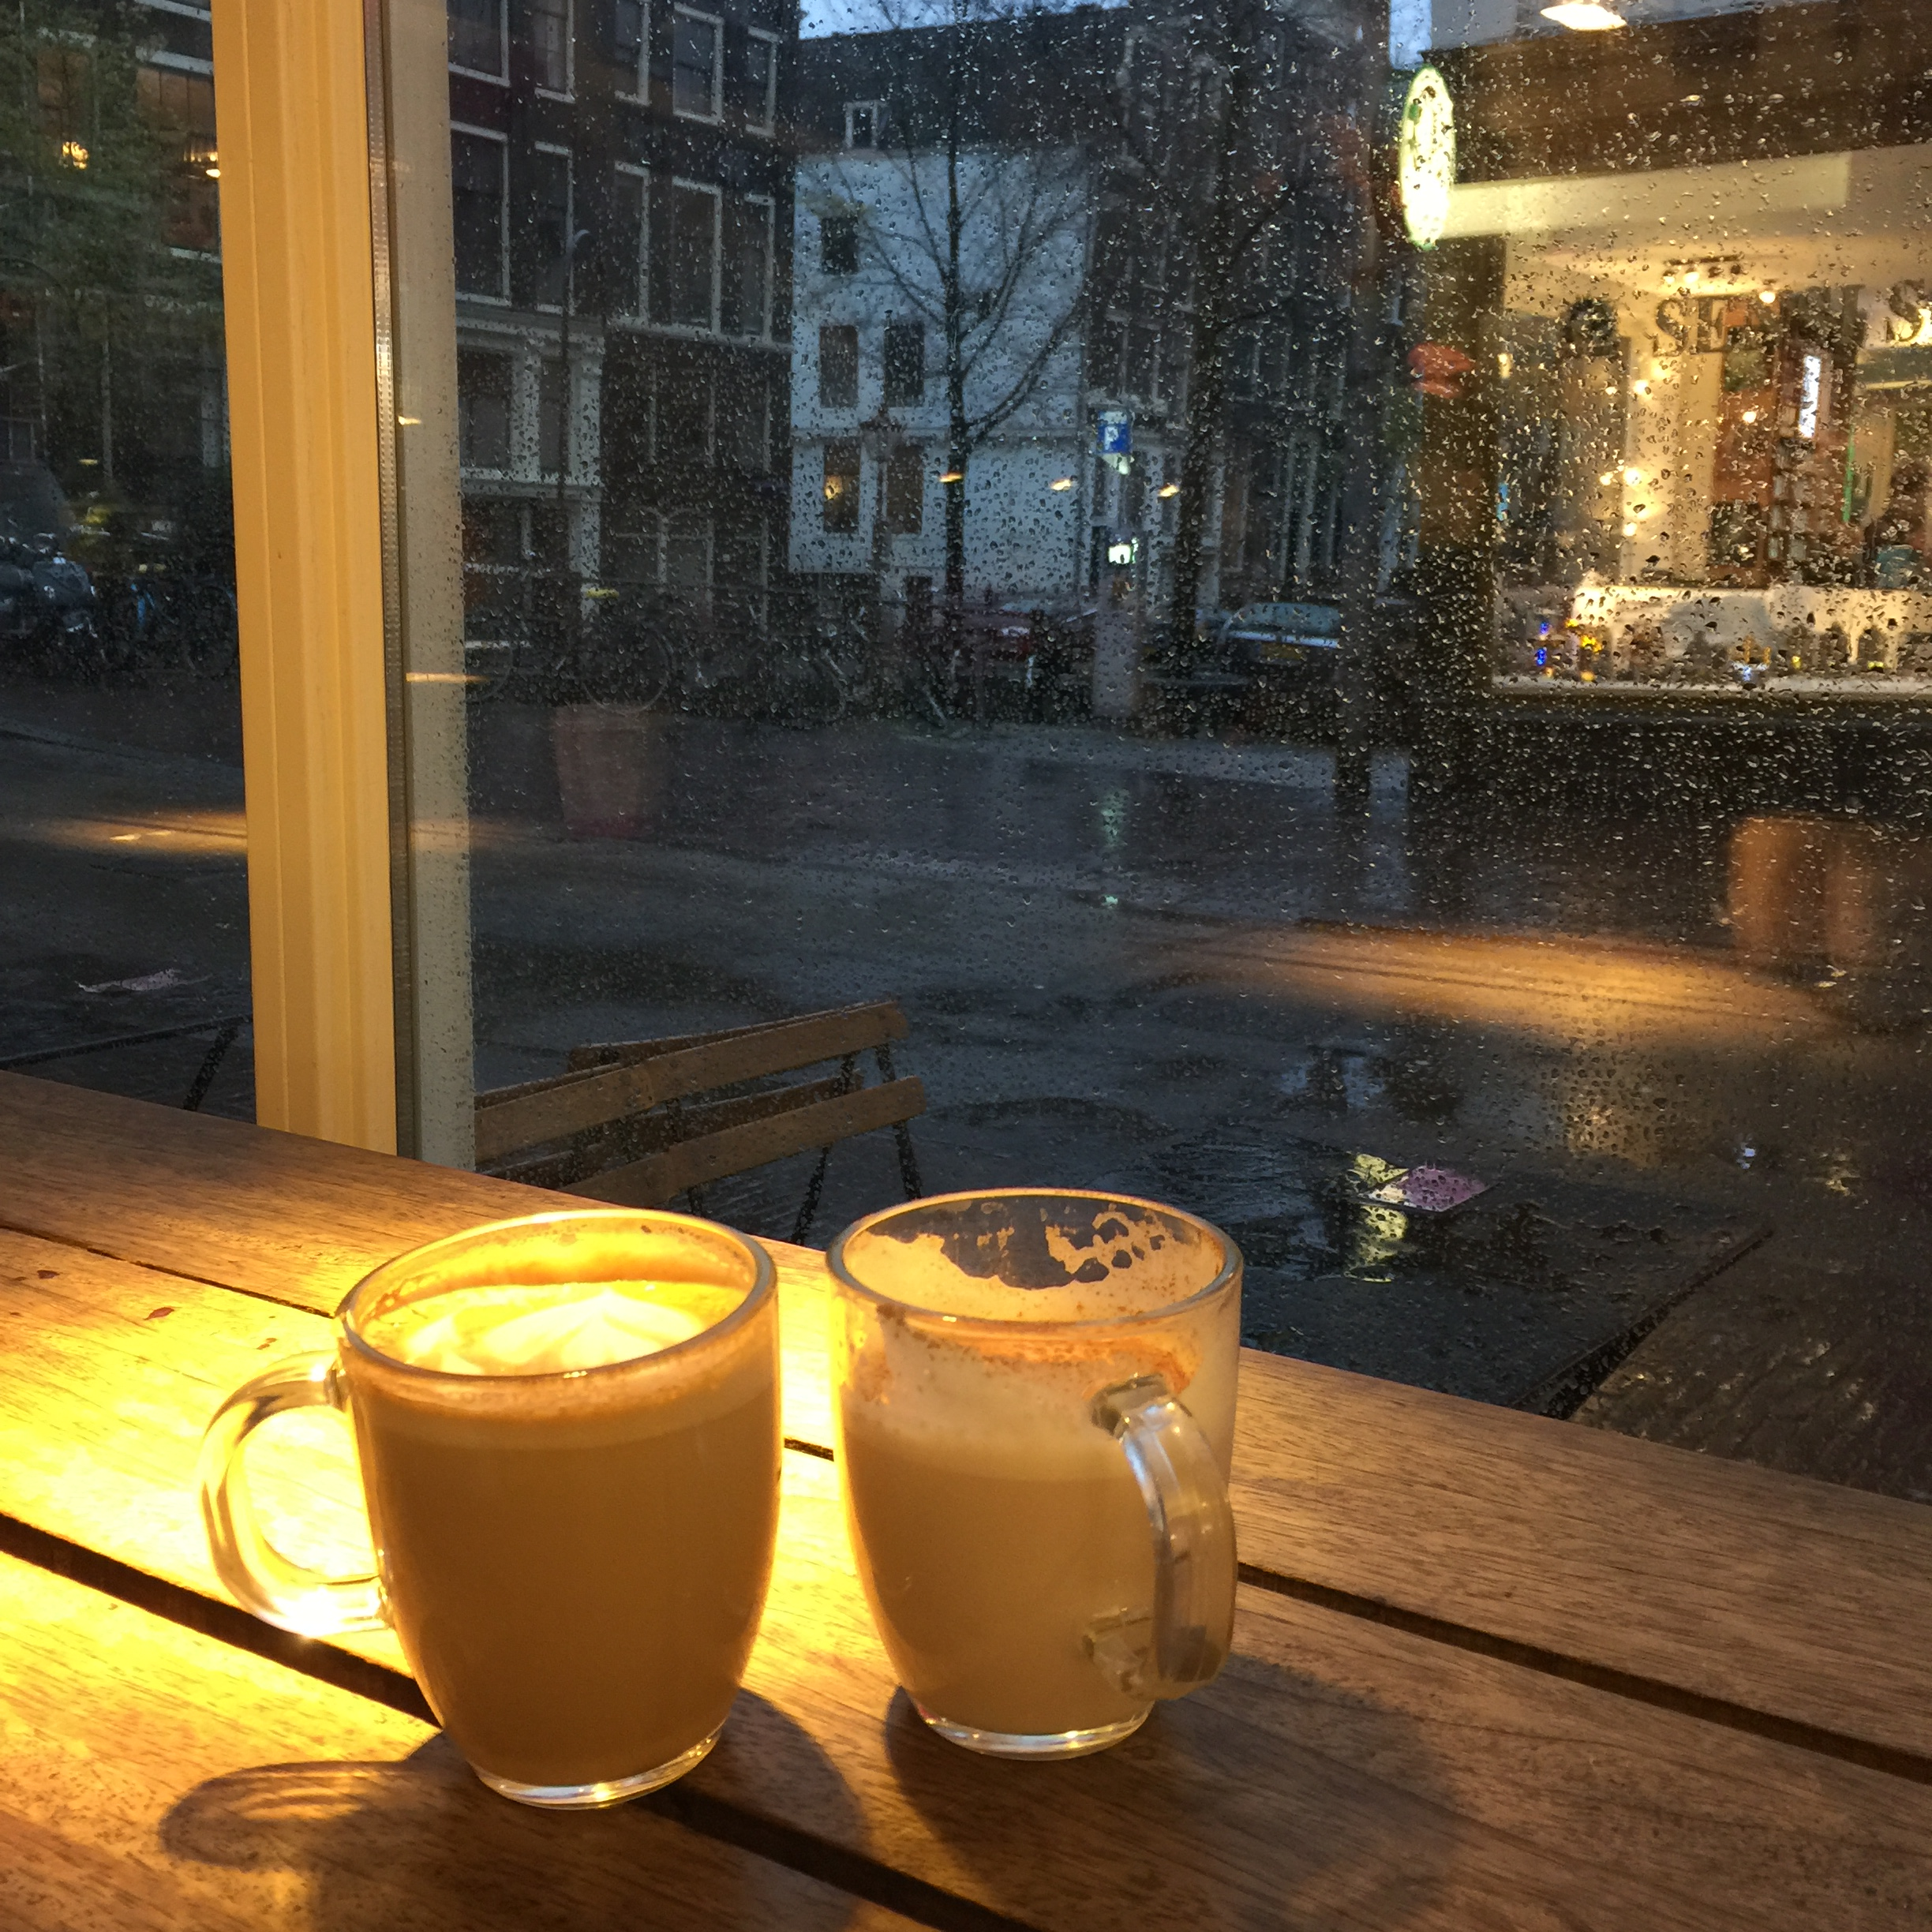 People watching in Amsterdam